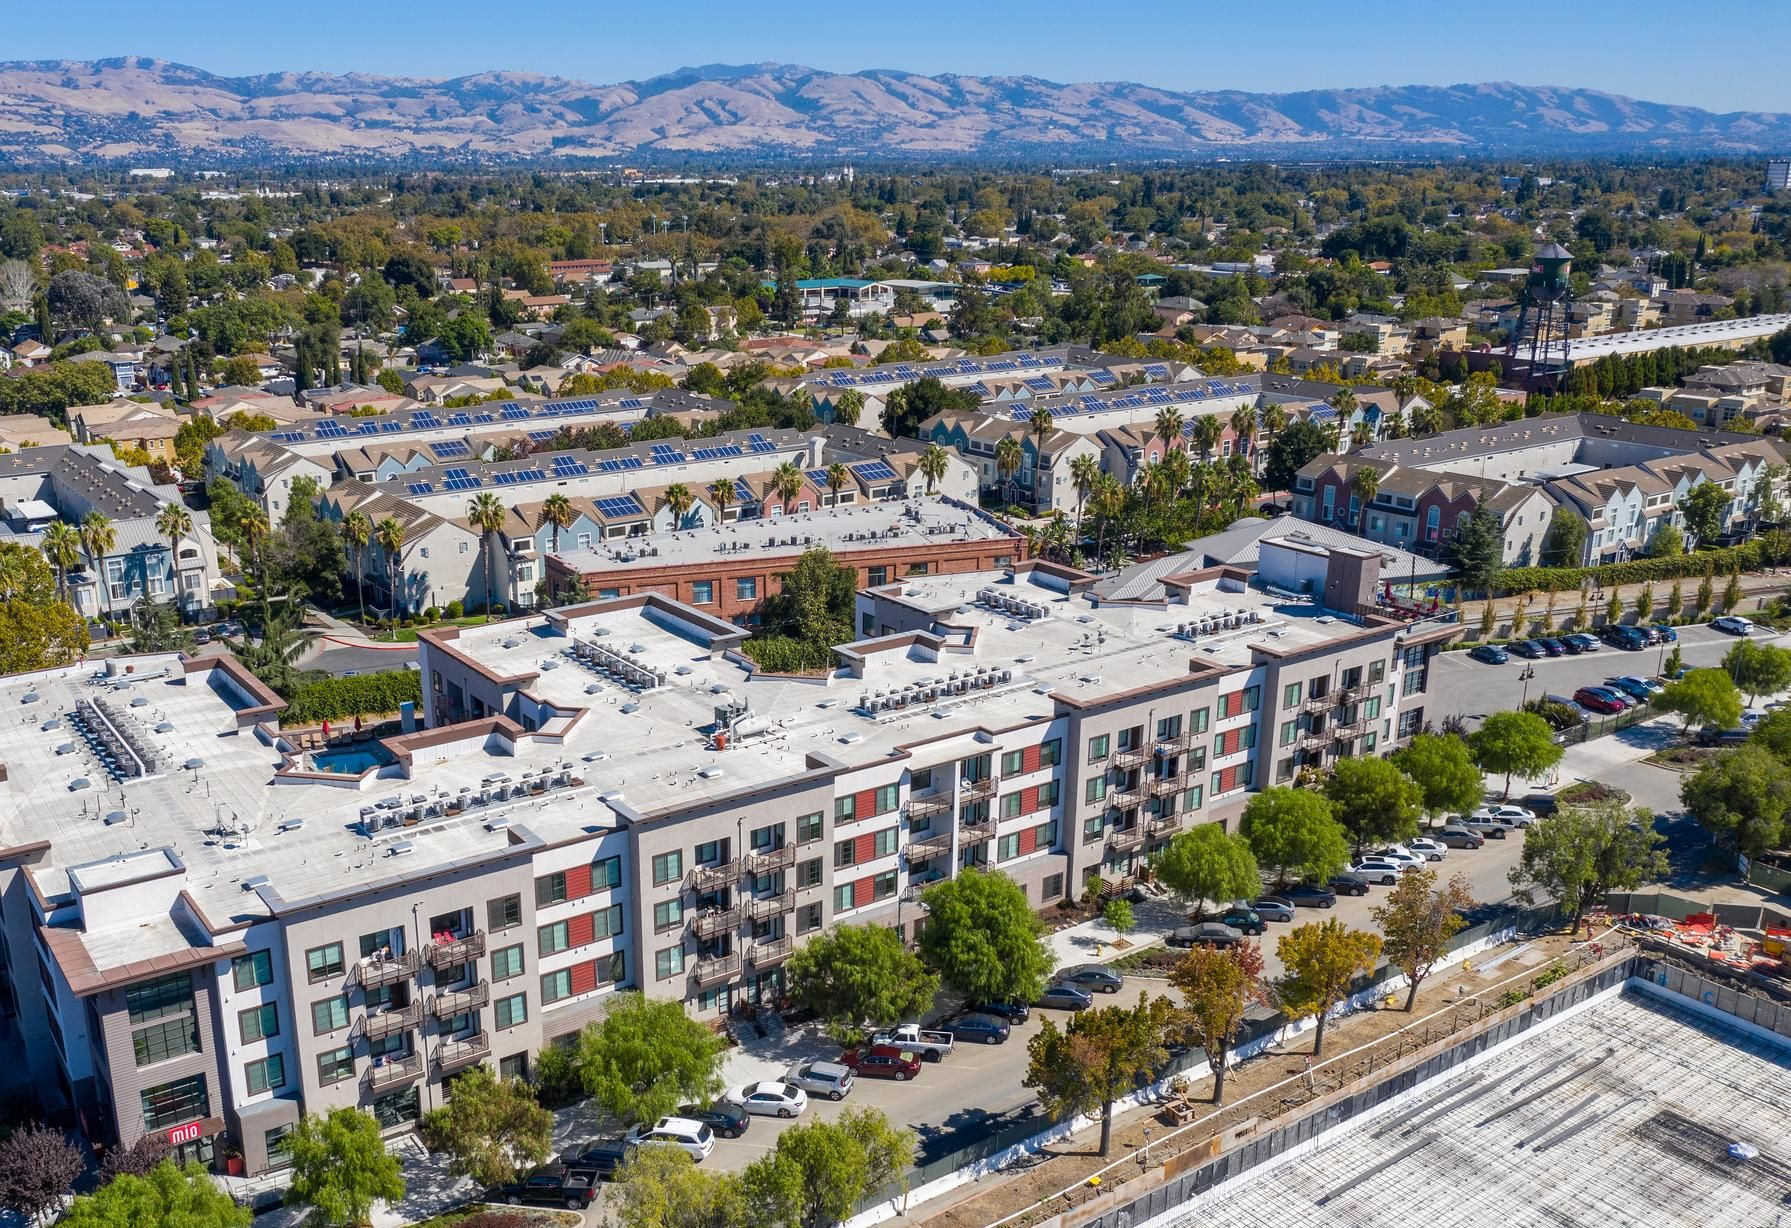 Housing-Starved Bay Area Seeing Short-Term Rentals Turn Into Long-Term Options